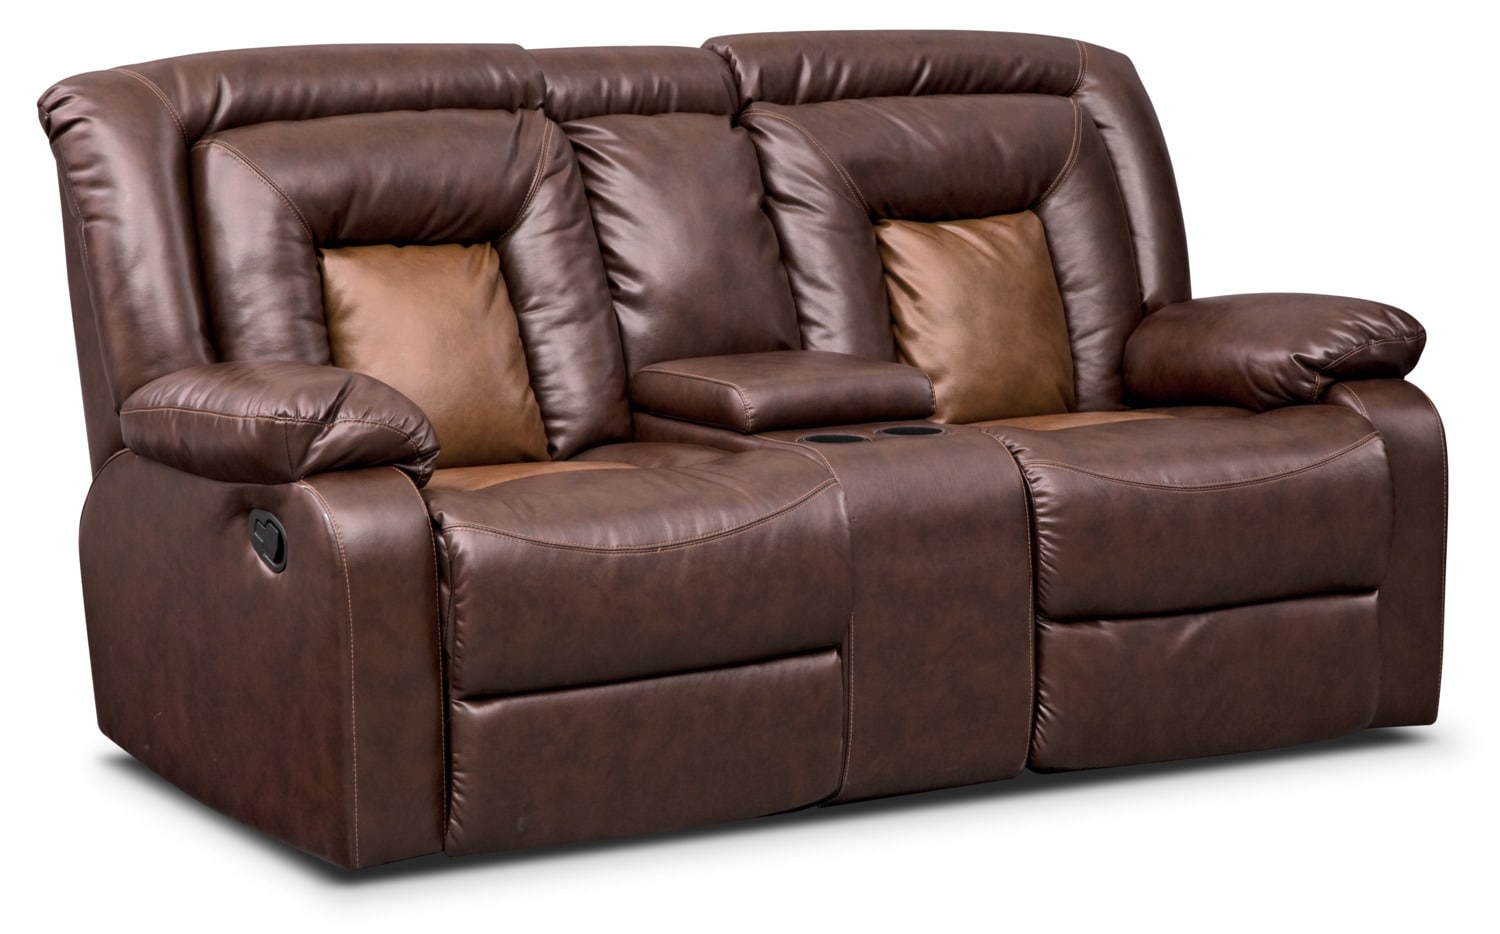 Mustang dual reclining sofa dual reclining loveseat and for Couch and loveseat